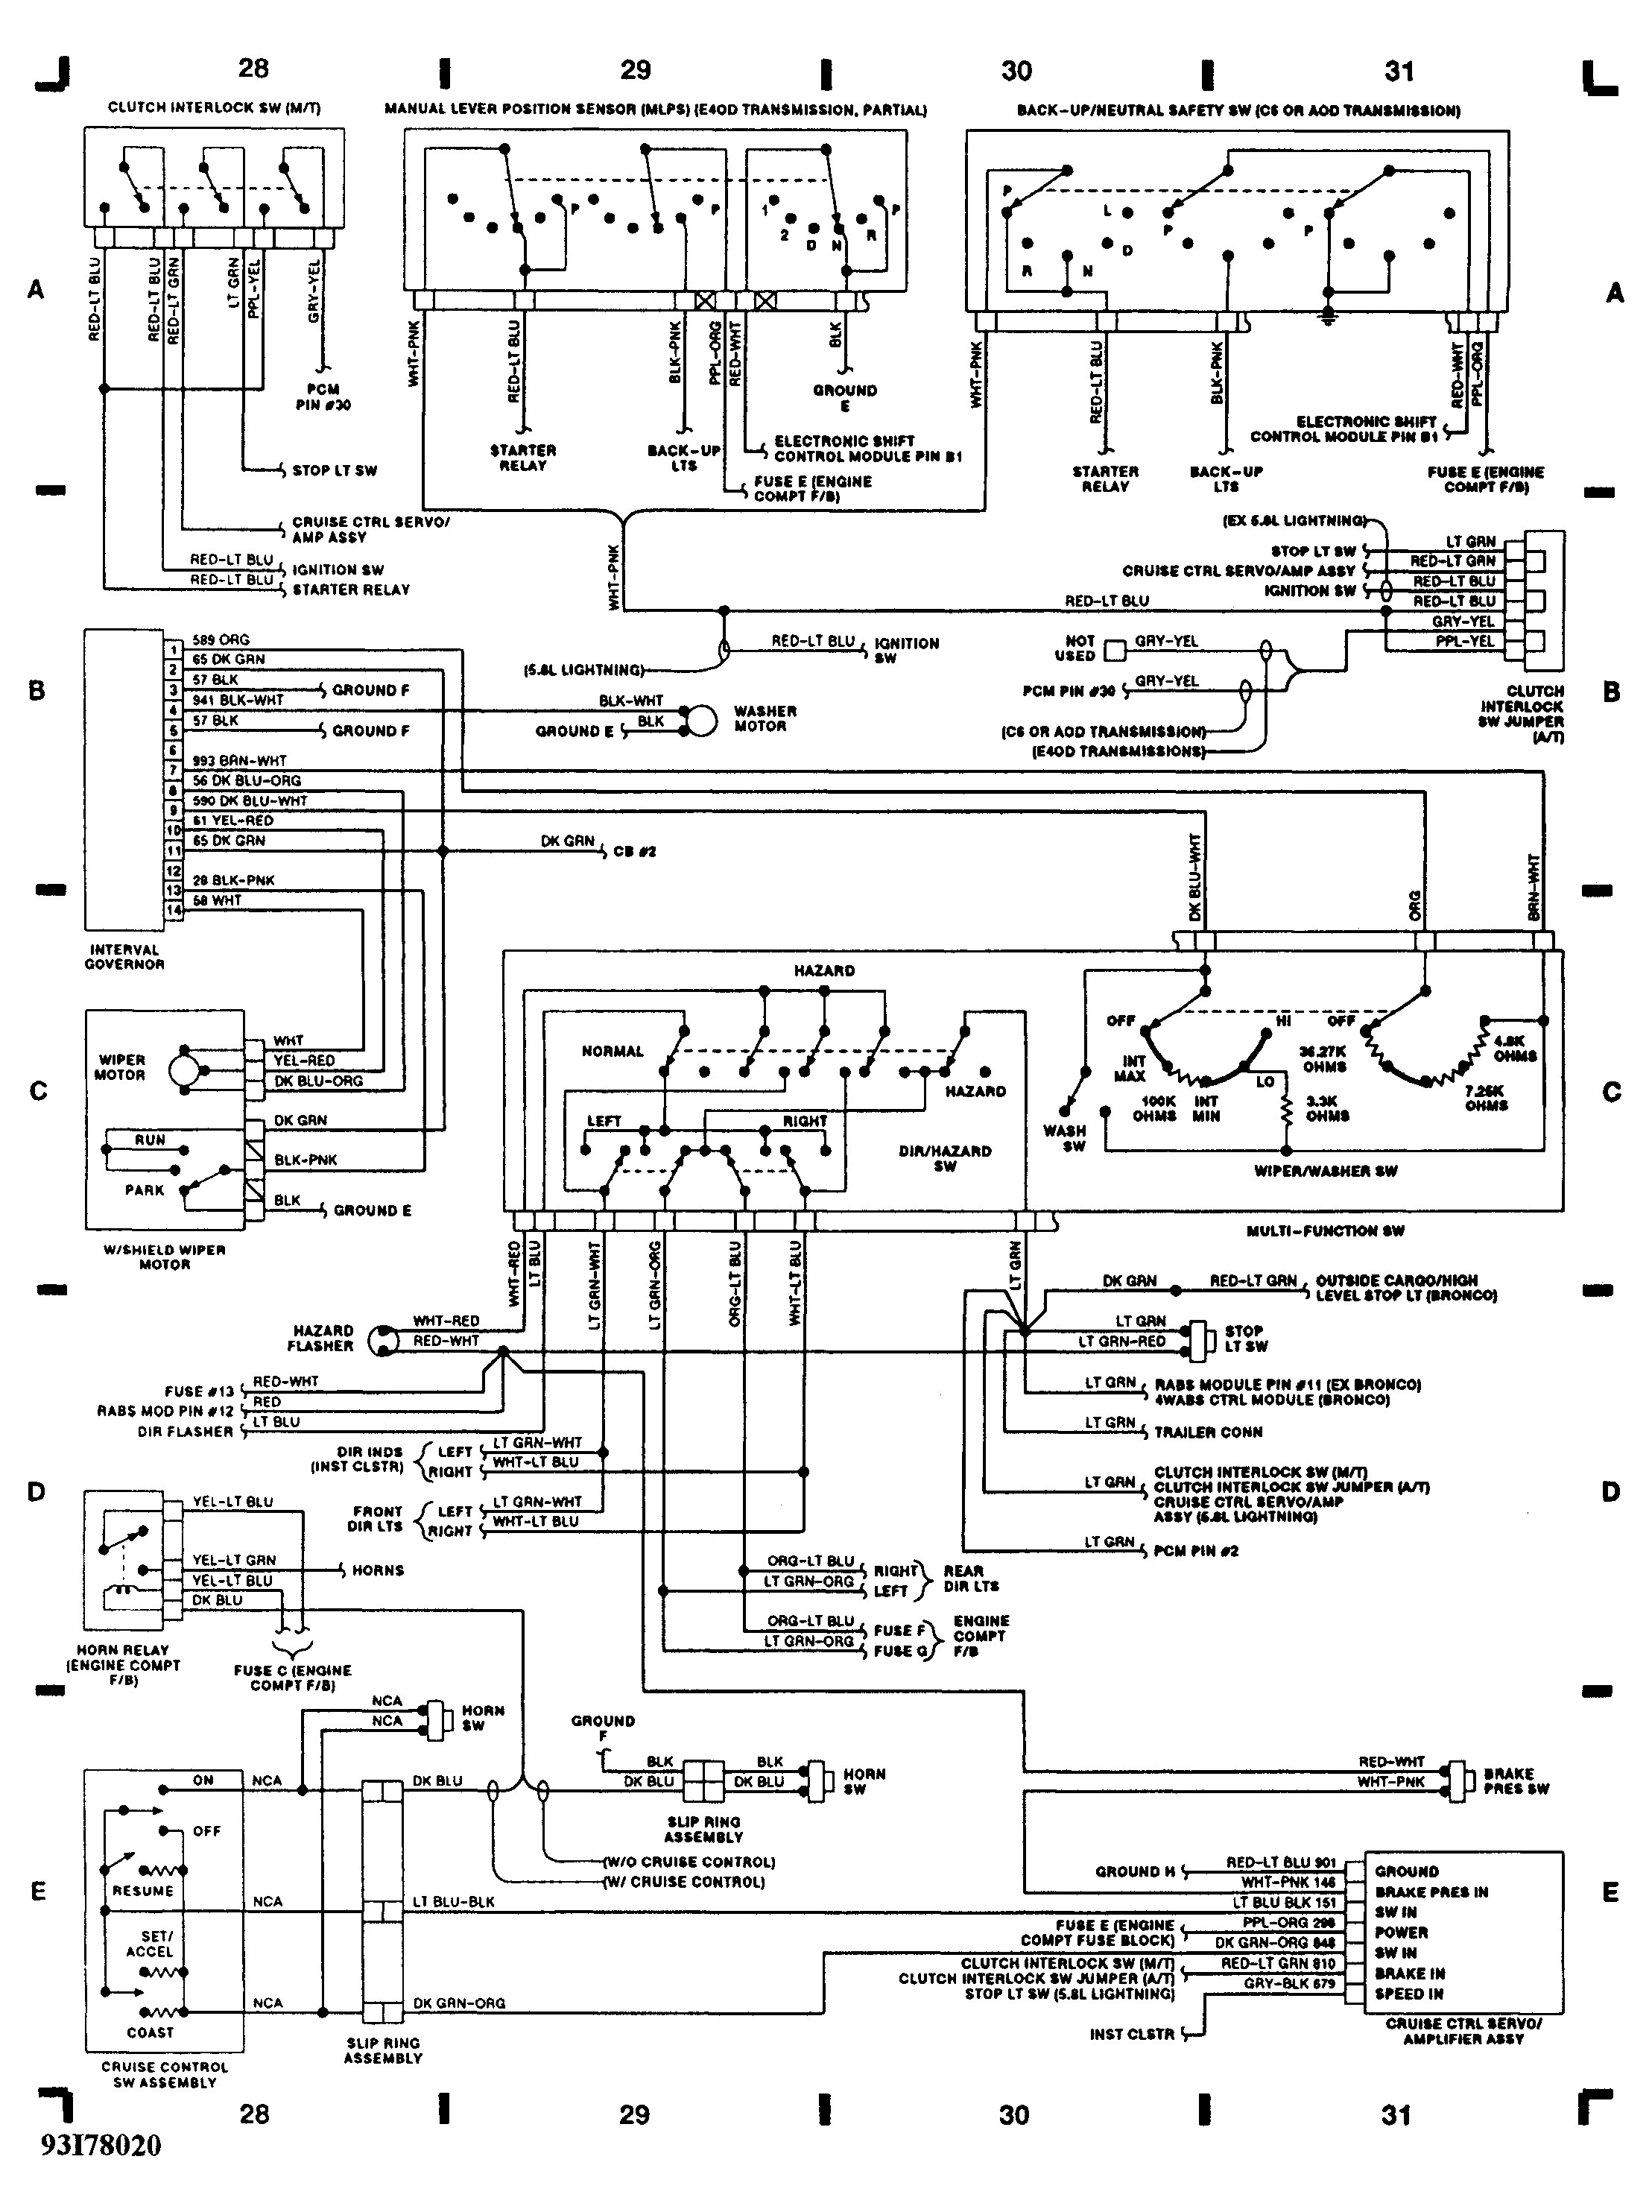 Ford Sel Glow Plug Wiring Diagram Ford Free Engine Image For User